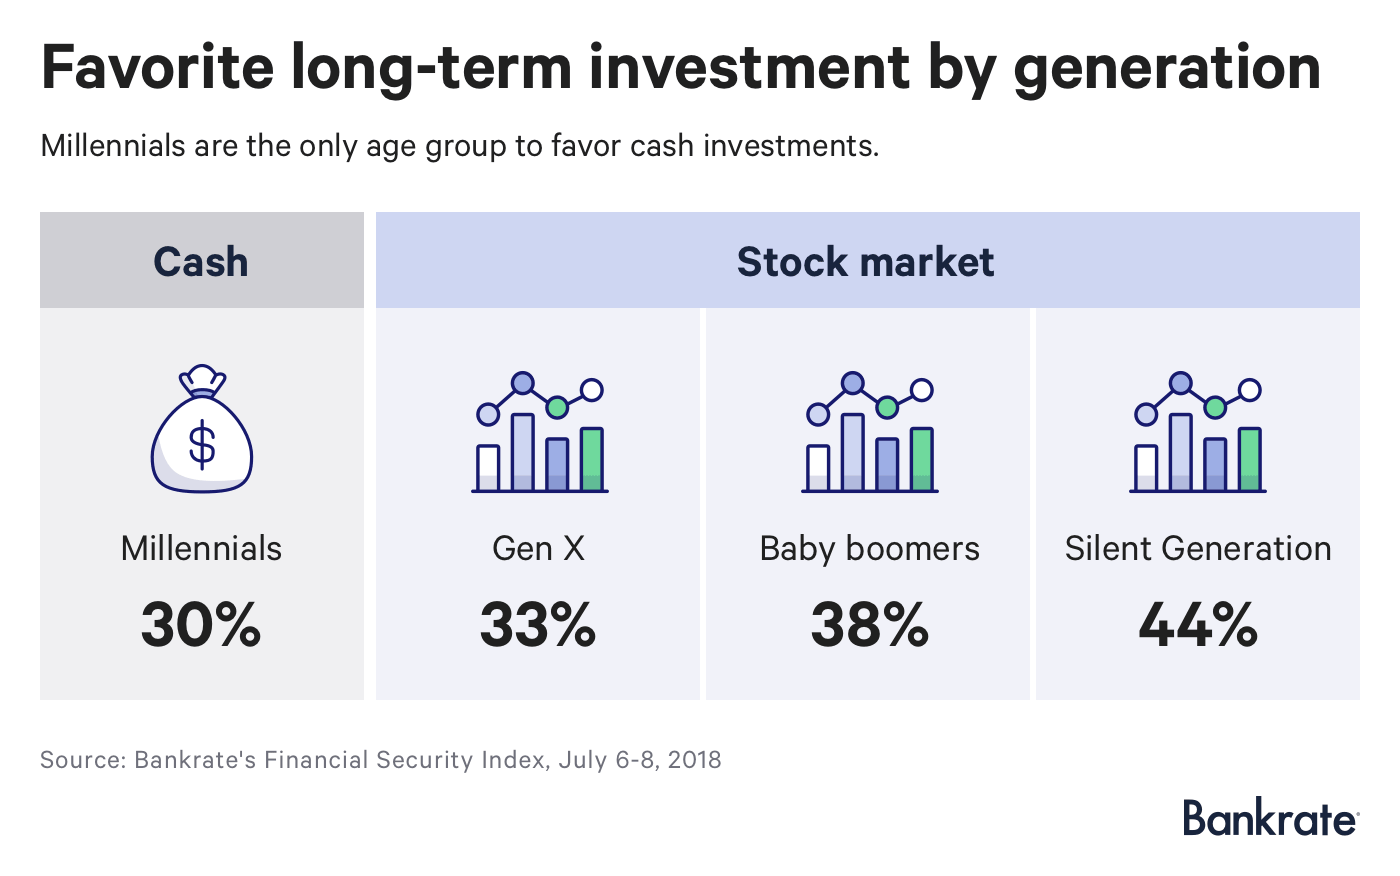 Survey: Favorite long-term investment by generation